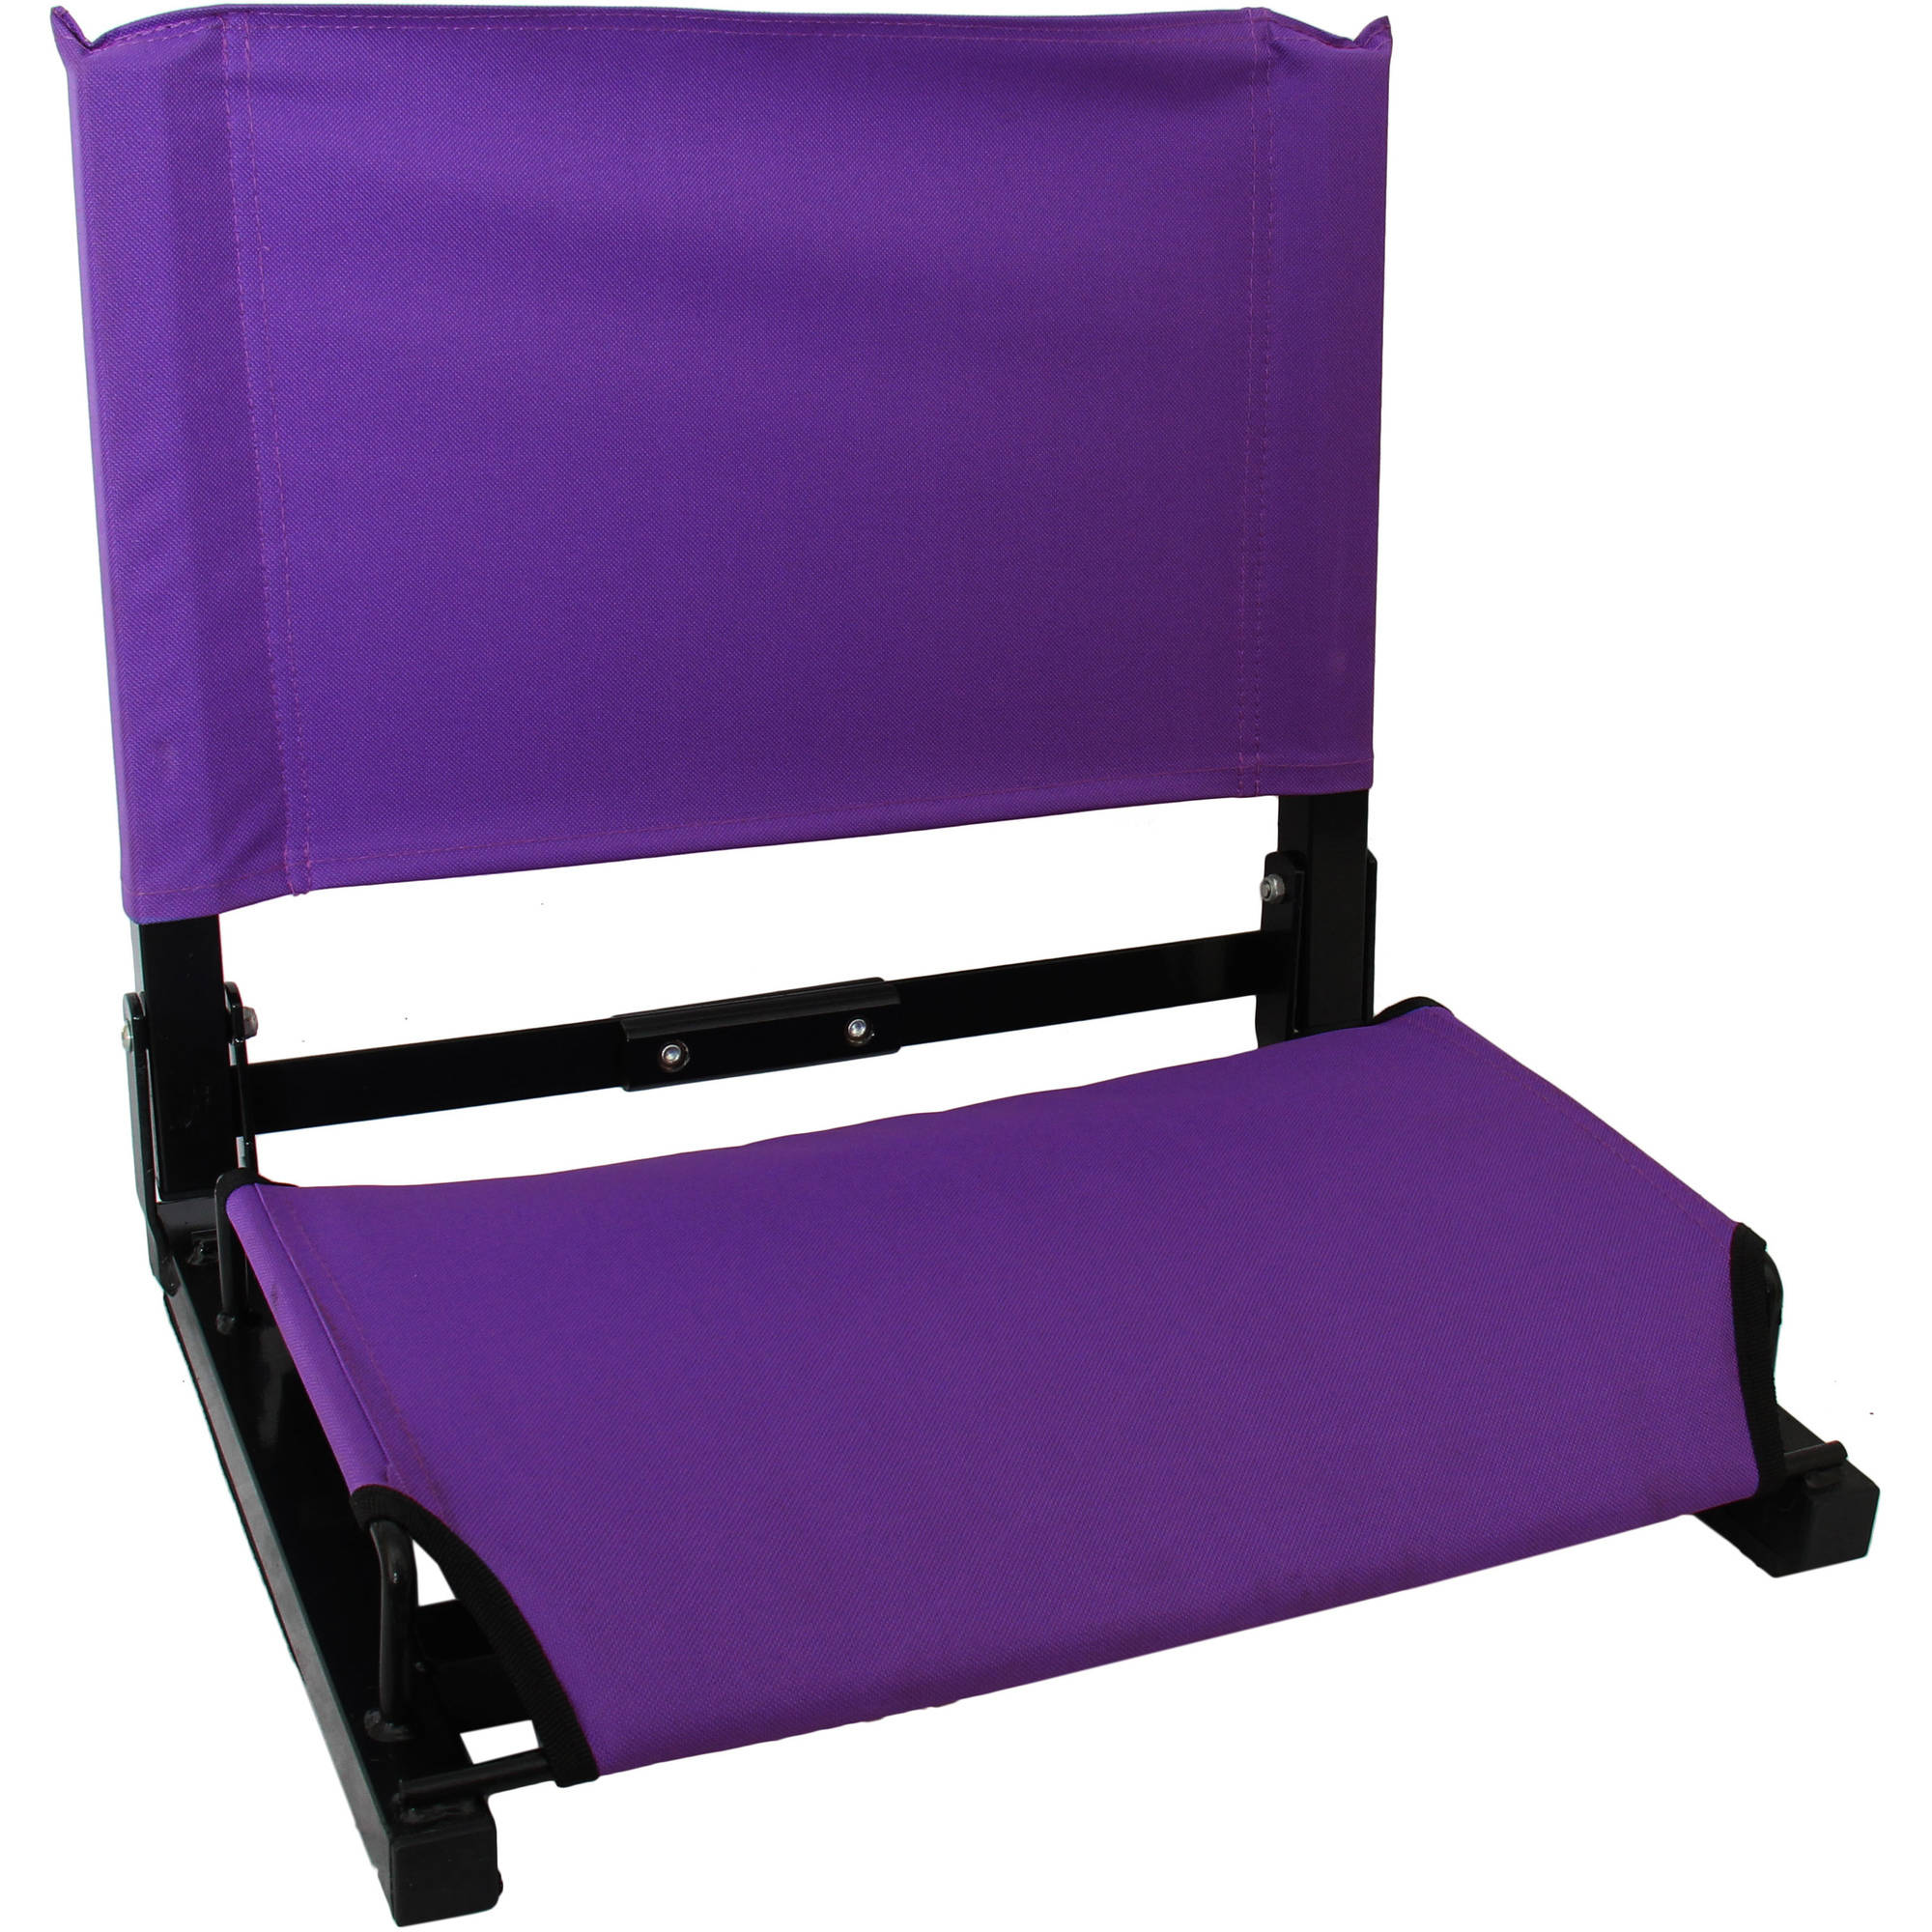 sc 1 st  Walmart & Threadart Folding Stadium Chair Bleacher Seat - Walmart.com